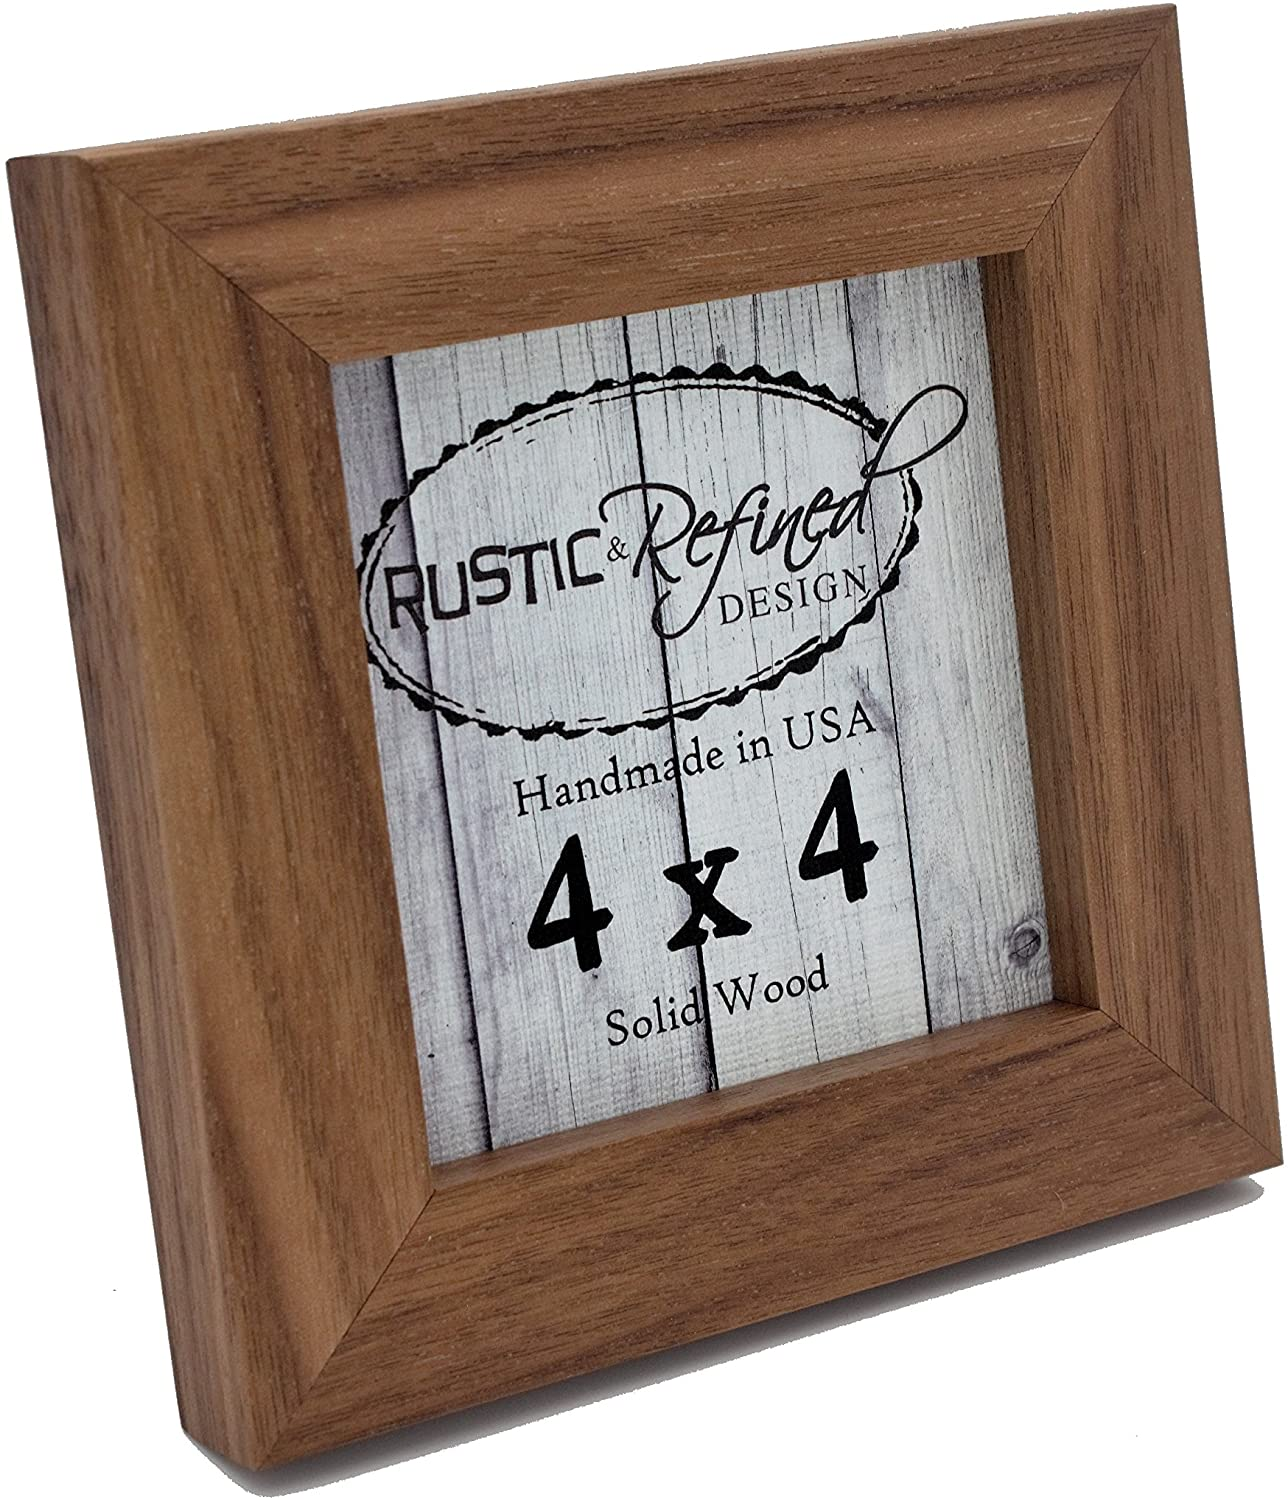 Rustic and Refined Design 4x4 Solid Wood Made in USA Picture Frame with 1 Inch Border (Gallery Collection) - Black Walnut